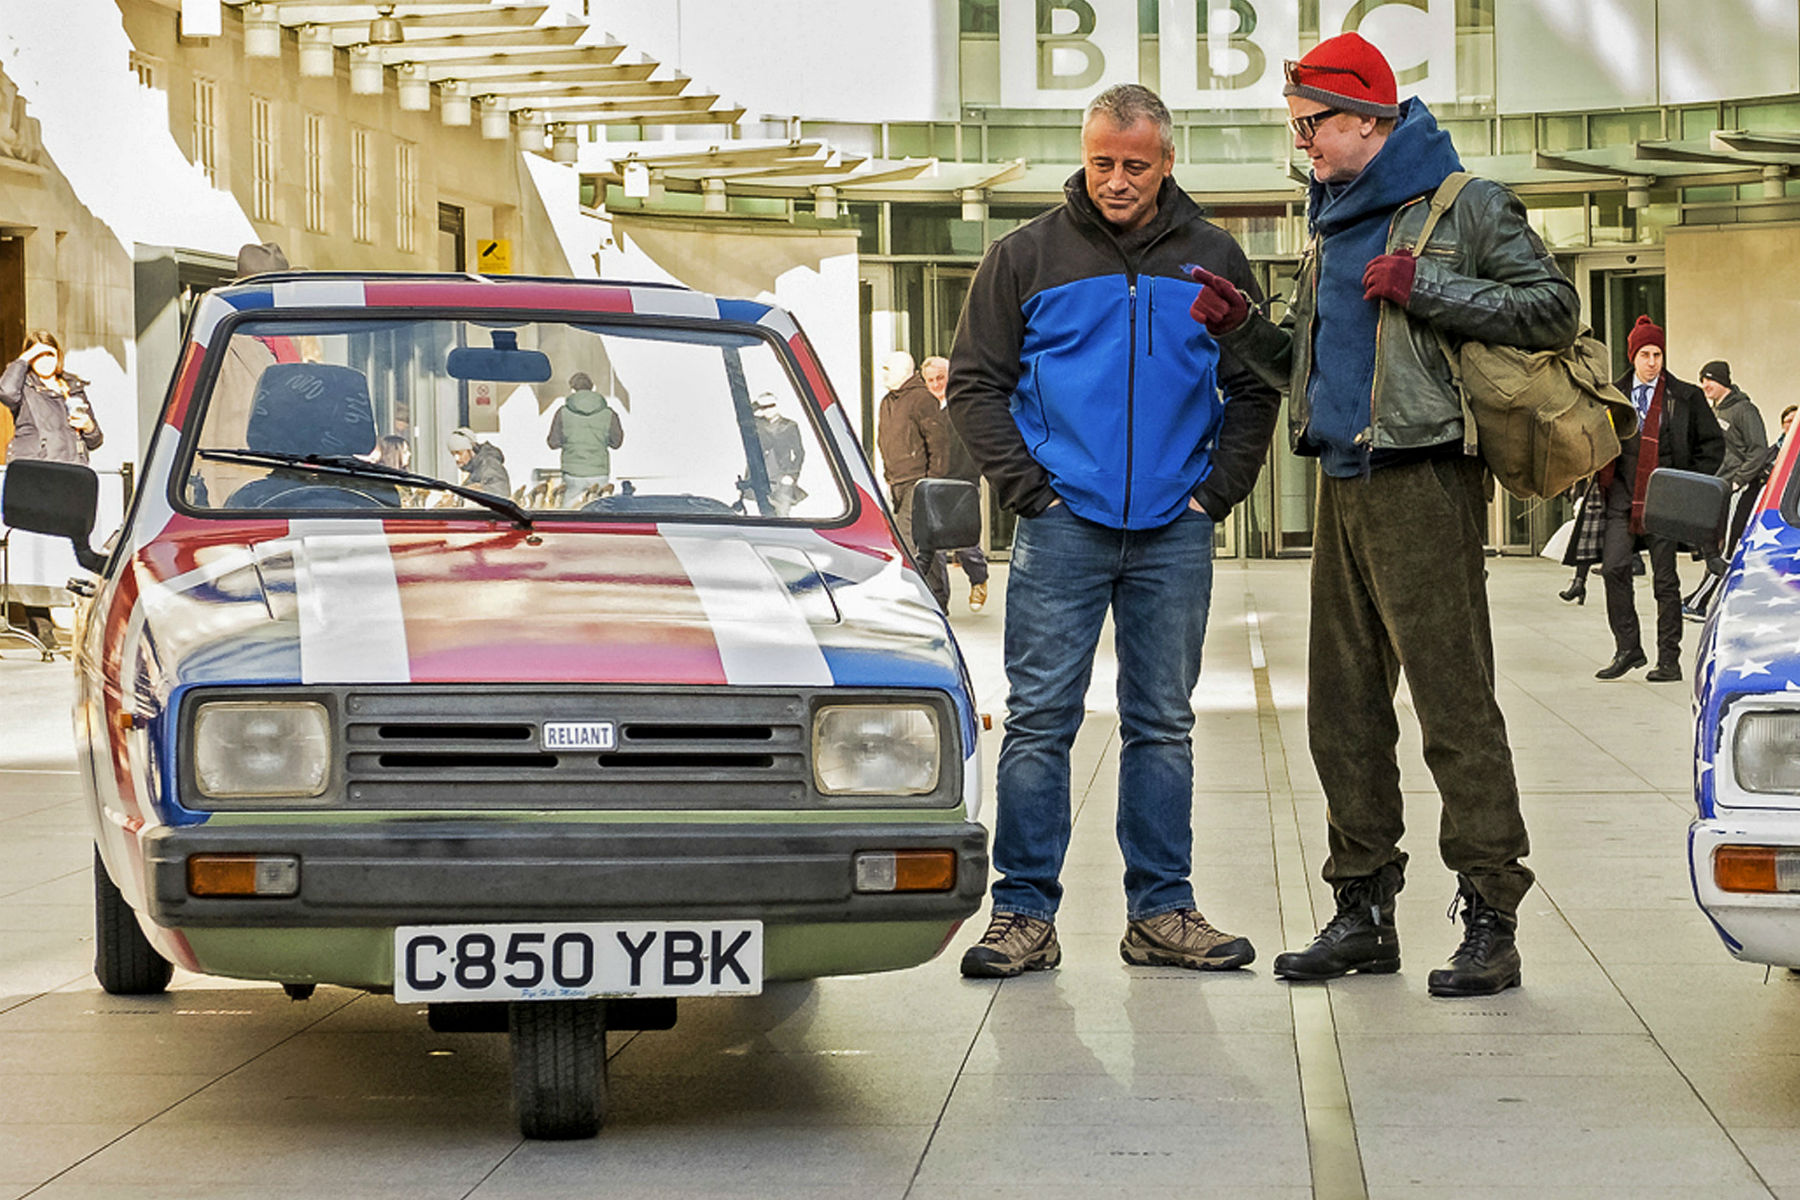 Confirmed: Matt LeBlanc will host the next series of Top Gear (without Chris Evans)